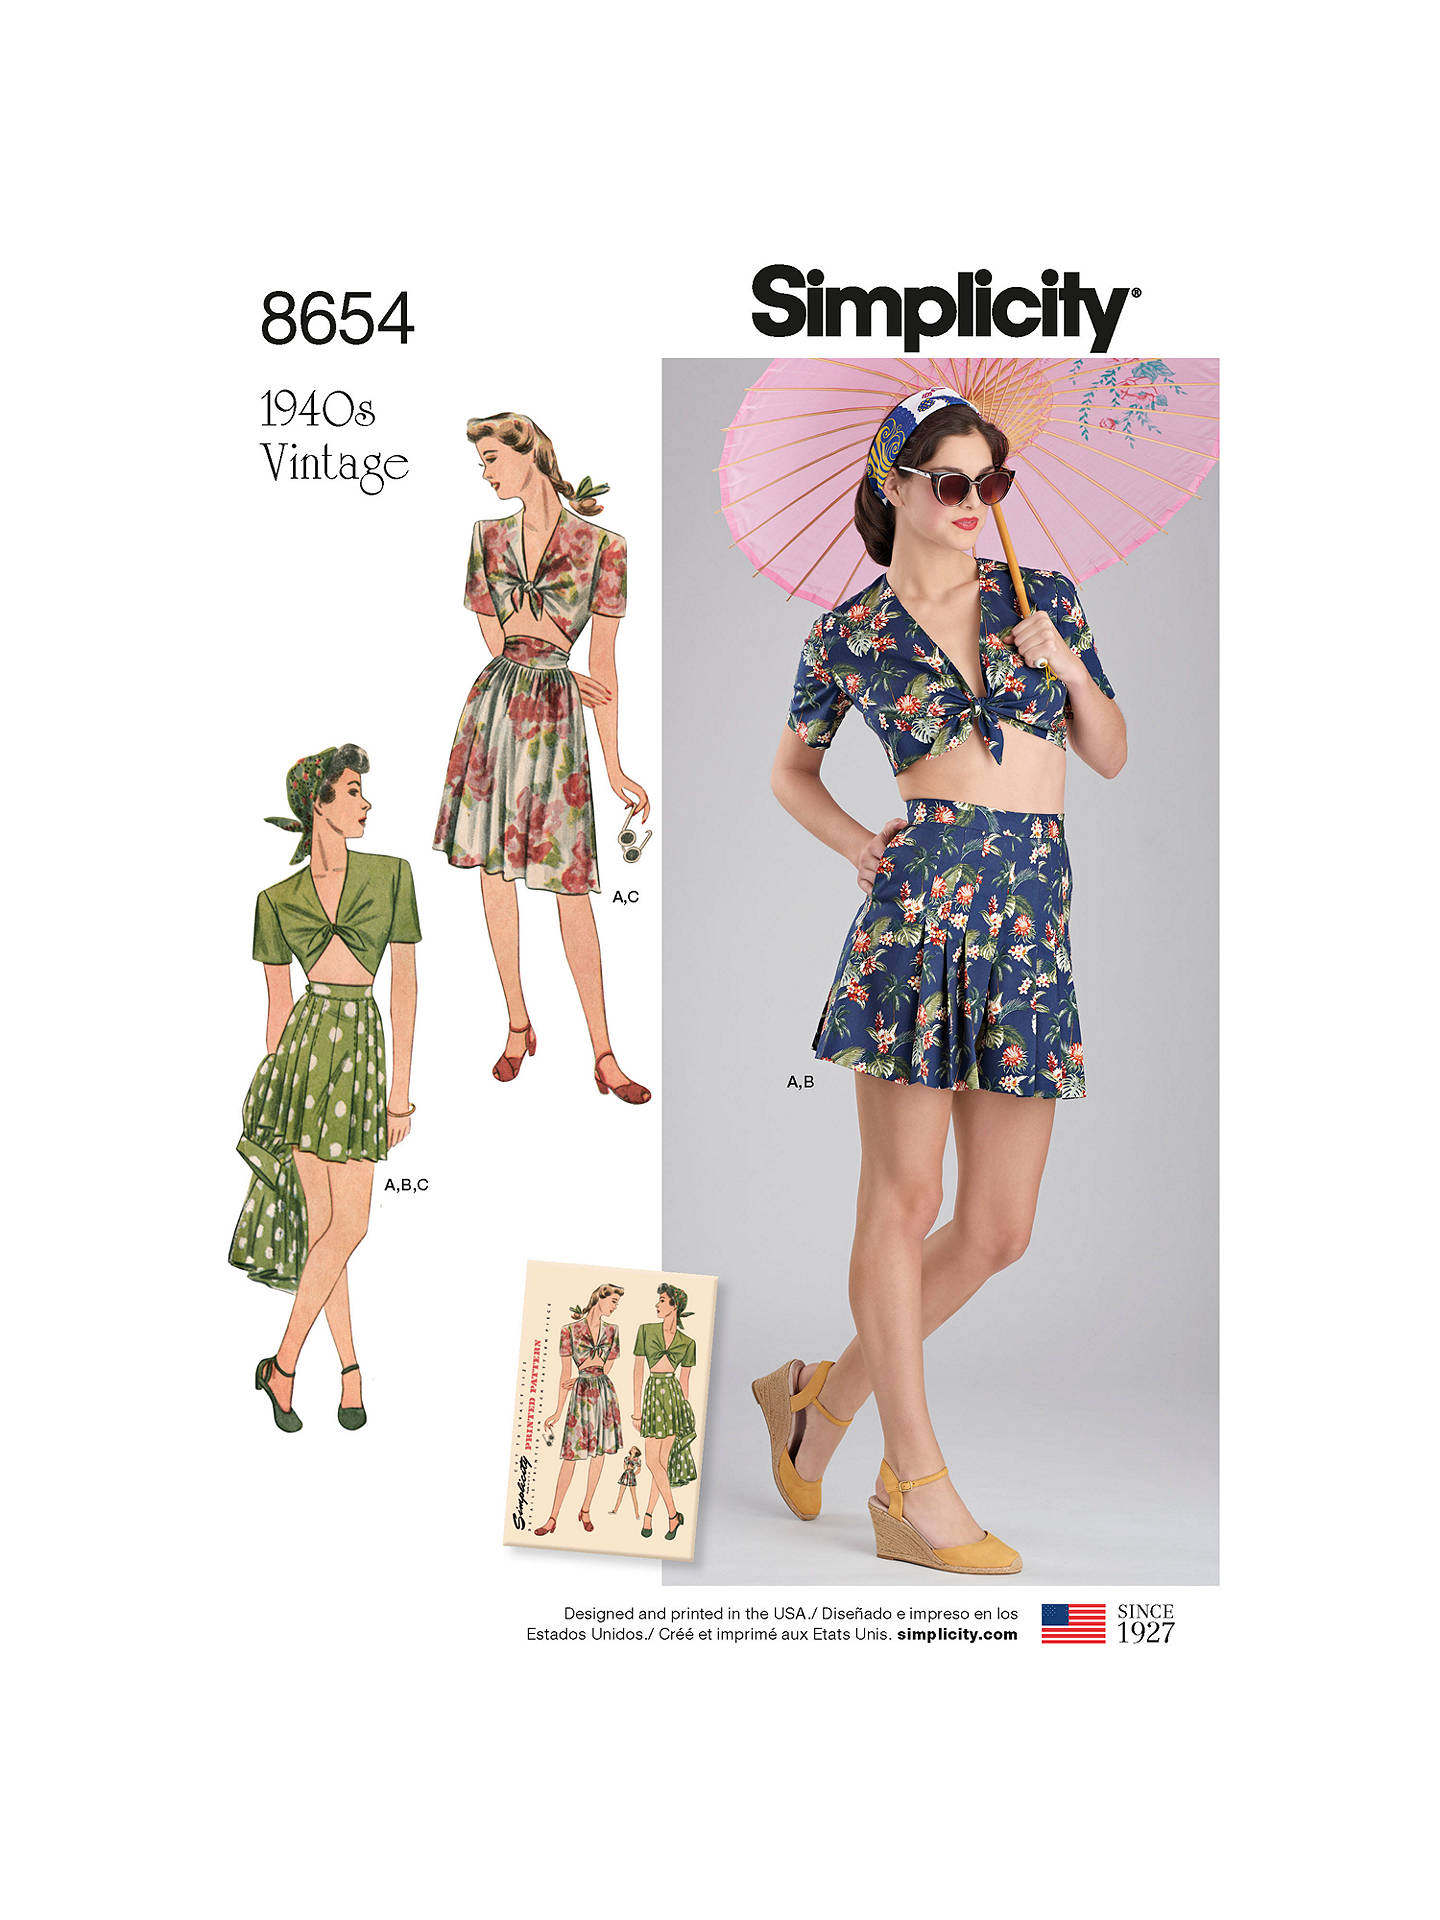 15e41420140f6 Buy Simplicity 1940's Vintage Women's Top and Skirt Sewing Pattern, 8654,  D5 Online at ...